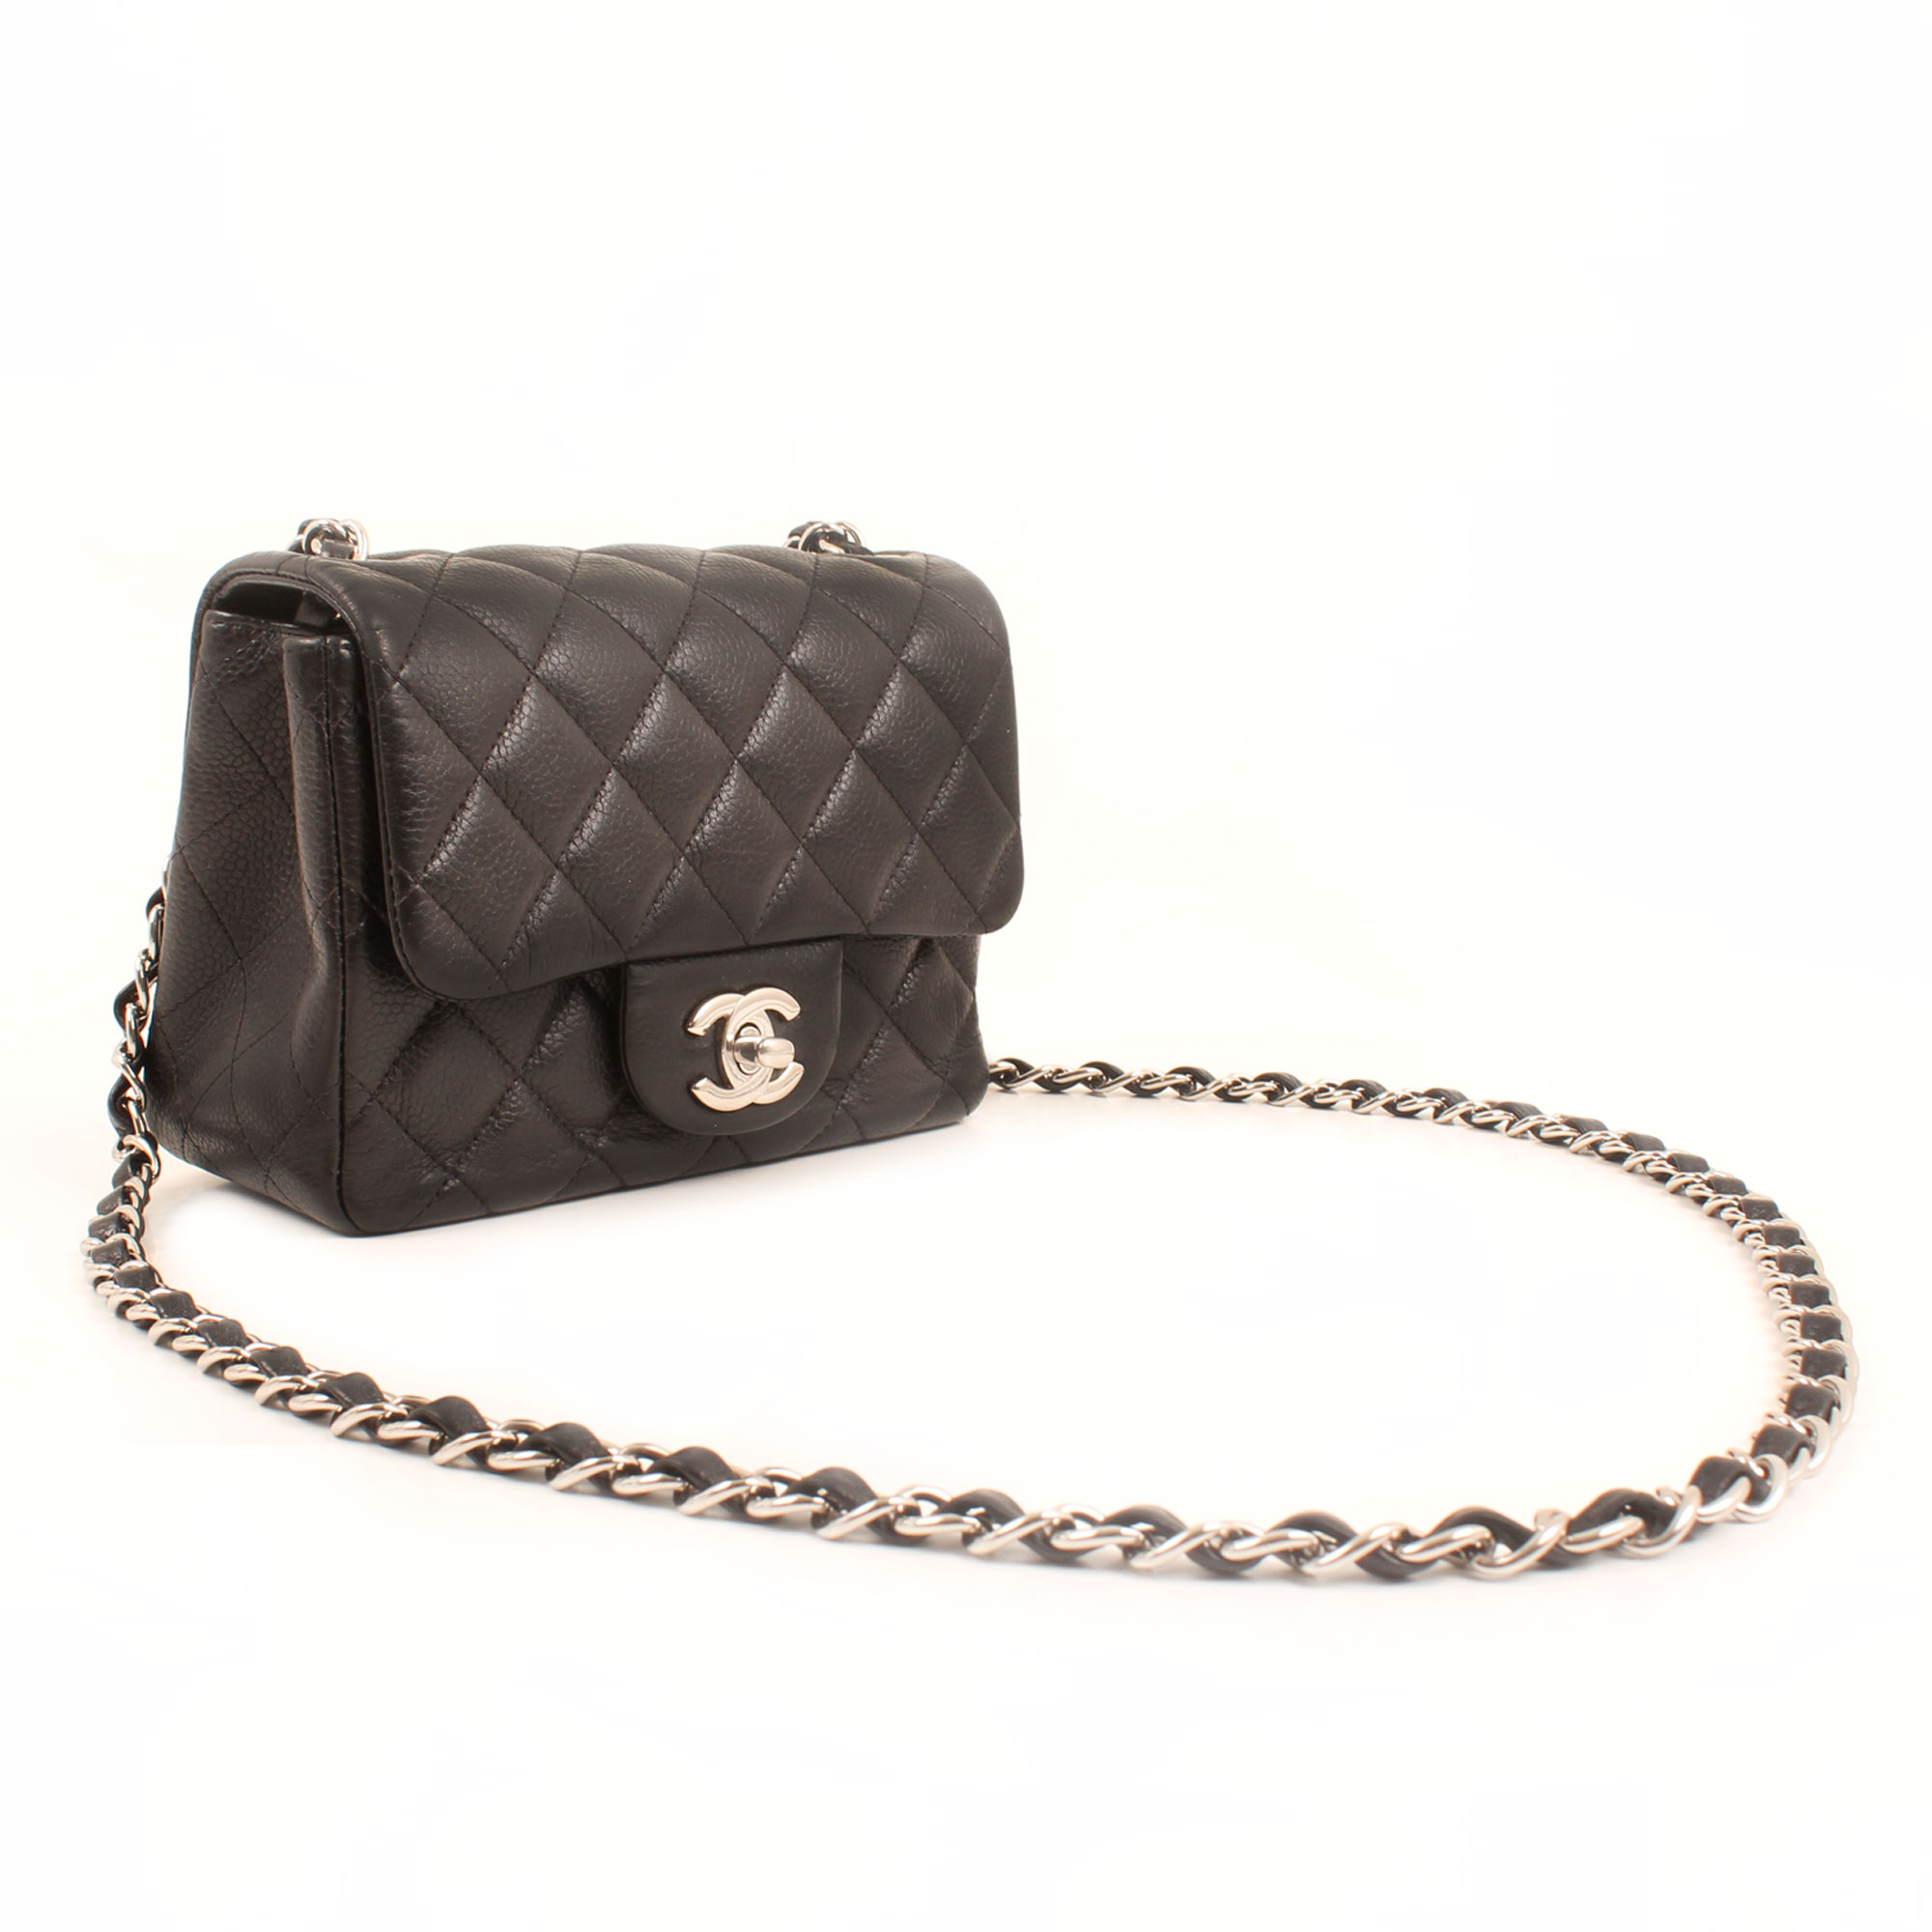 General image of chanel mini timeless black caviar leather